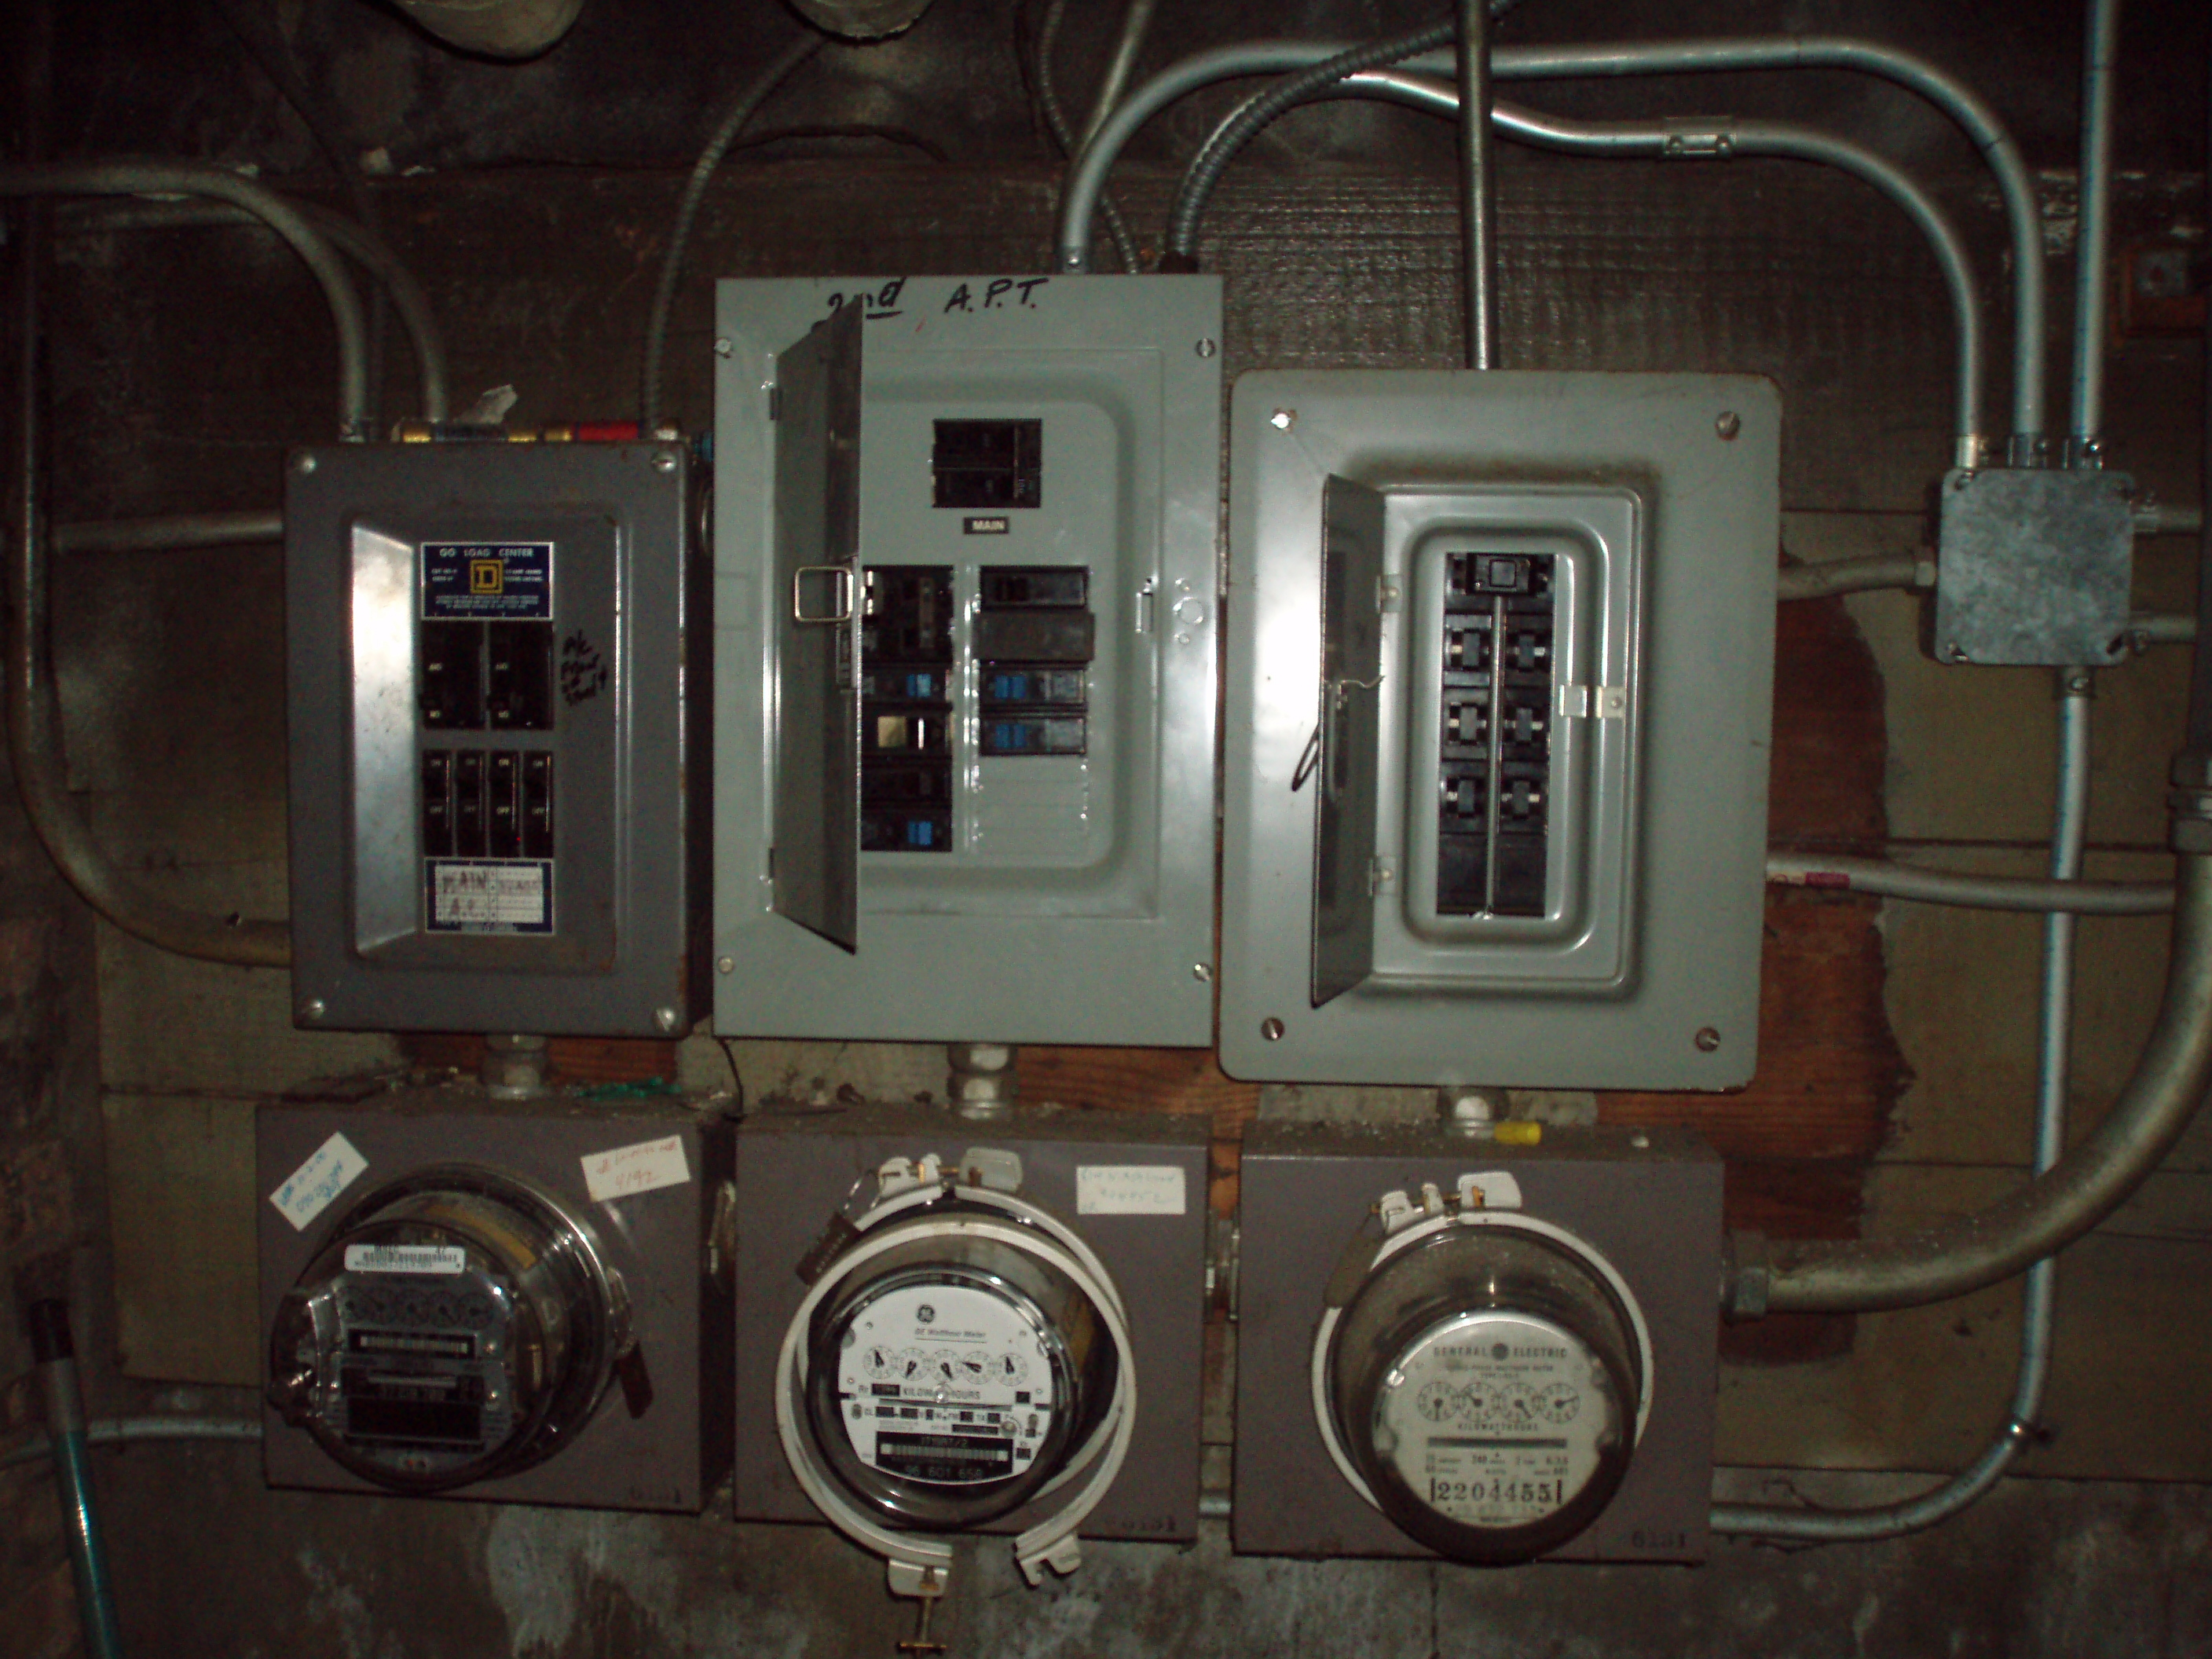 old meters and panels - before